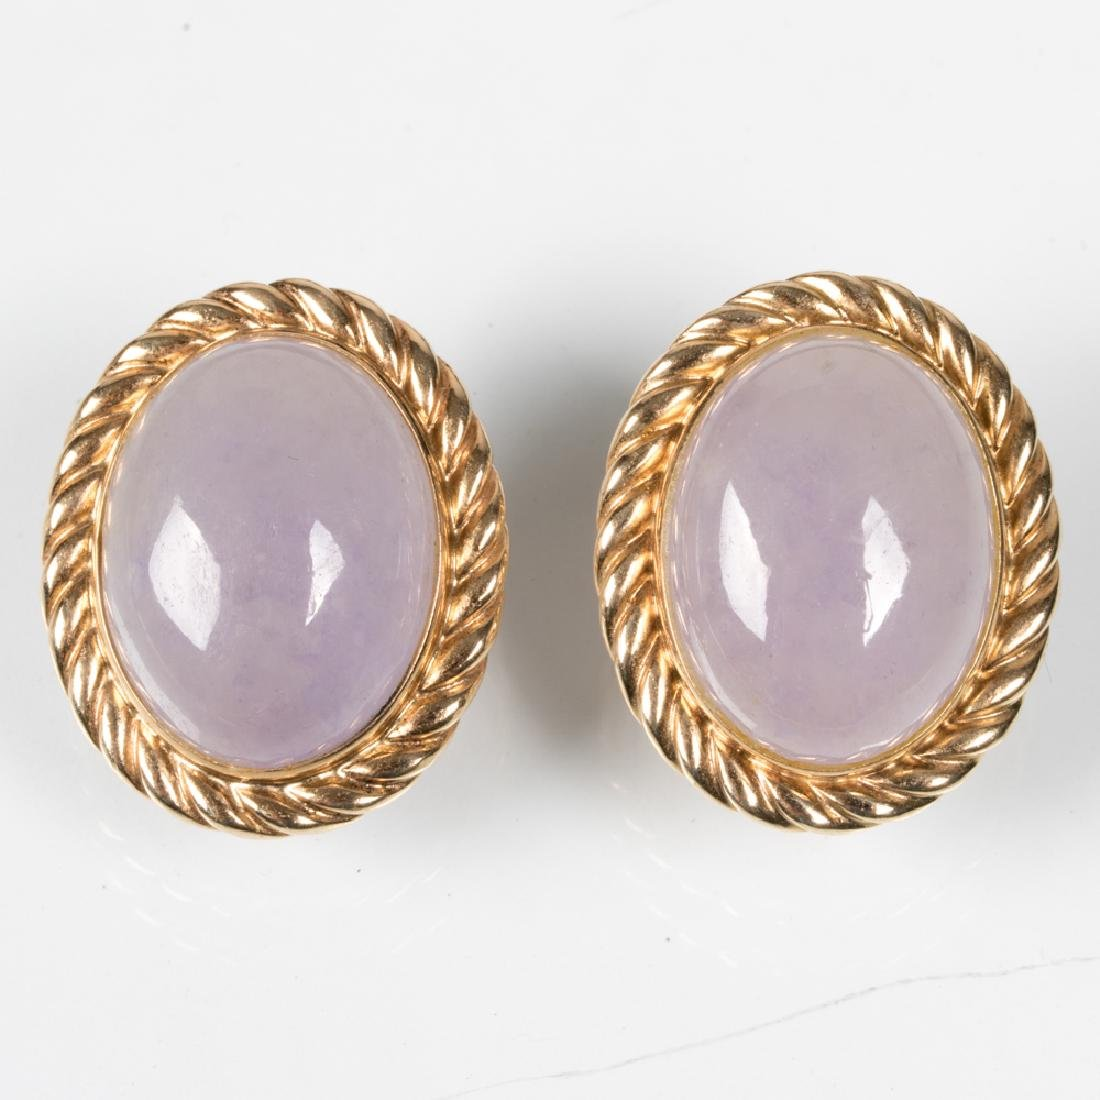 A Pair of 14kt. Yellow Gold and Lavender Jade Earrings.